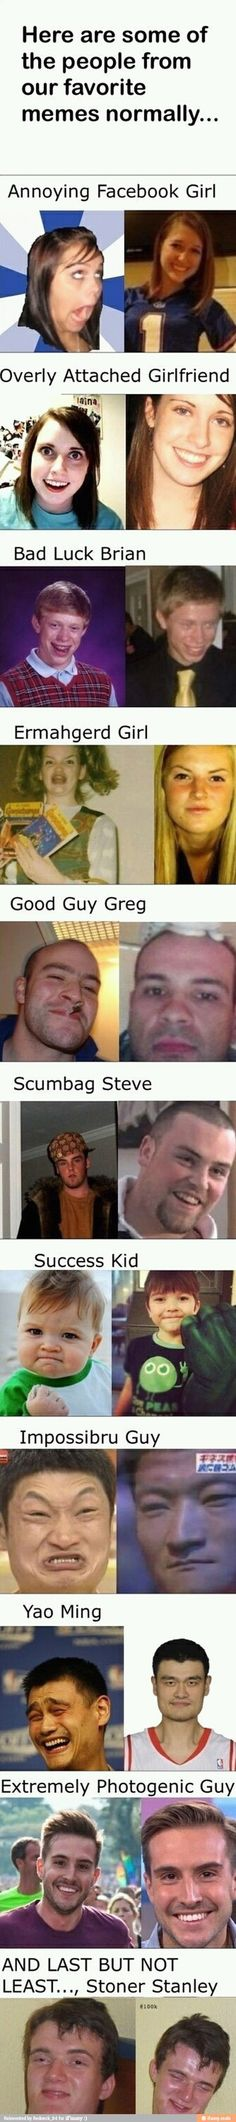 whoa...stoner steve is the same...lol same with photogenic guy